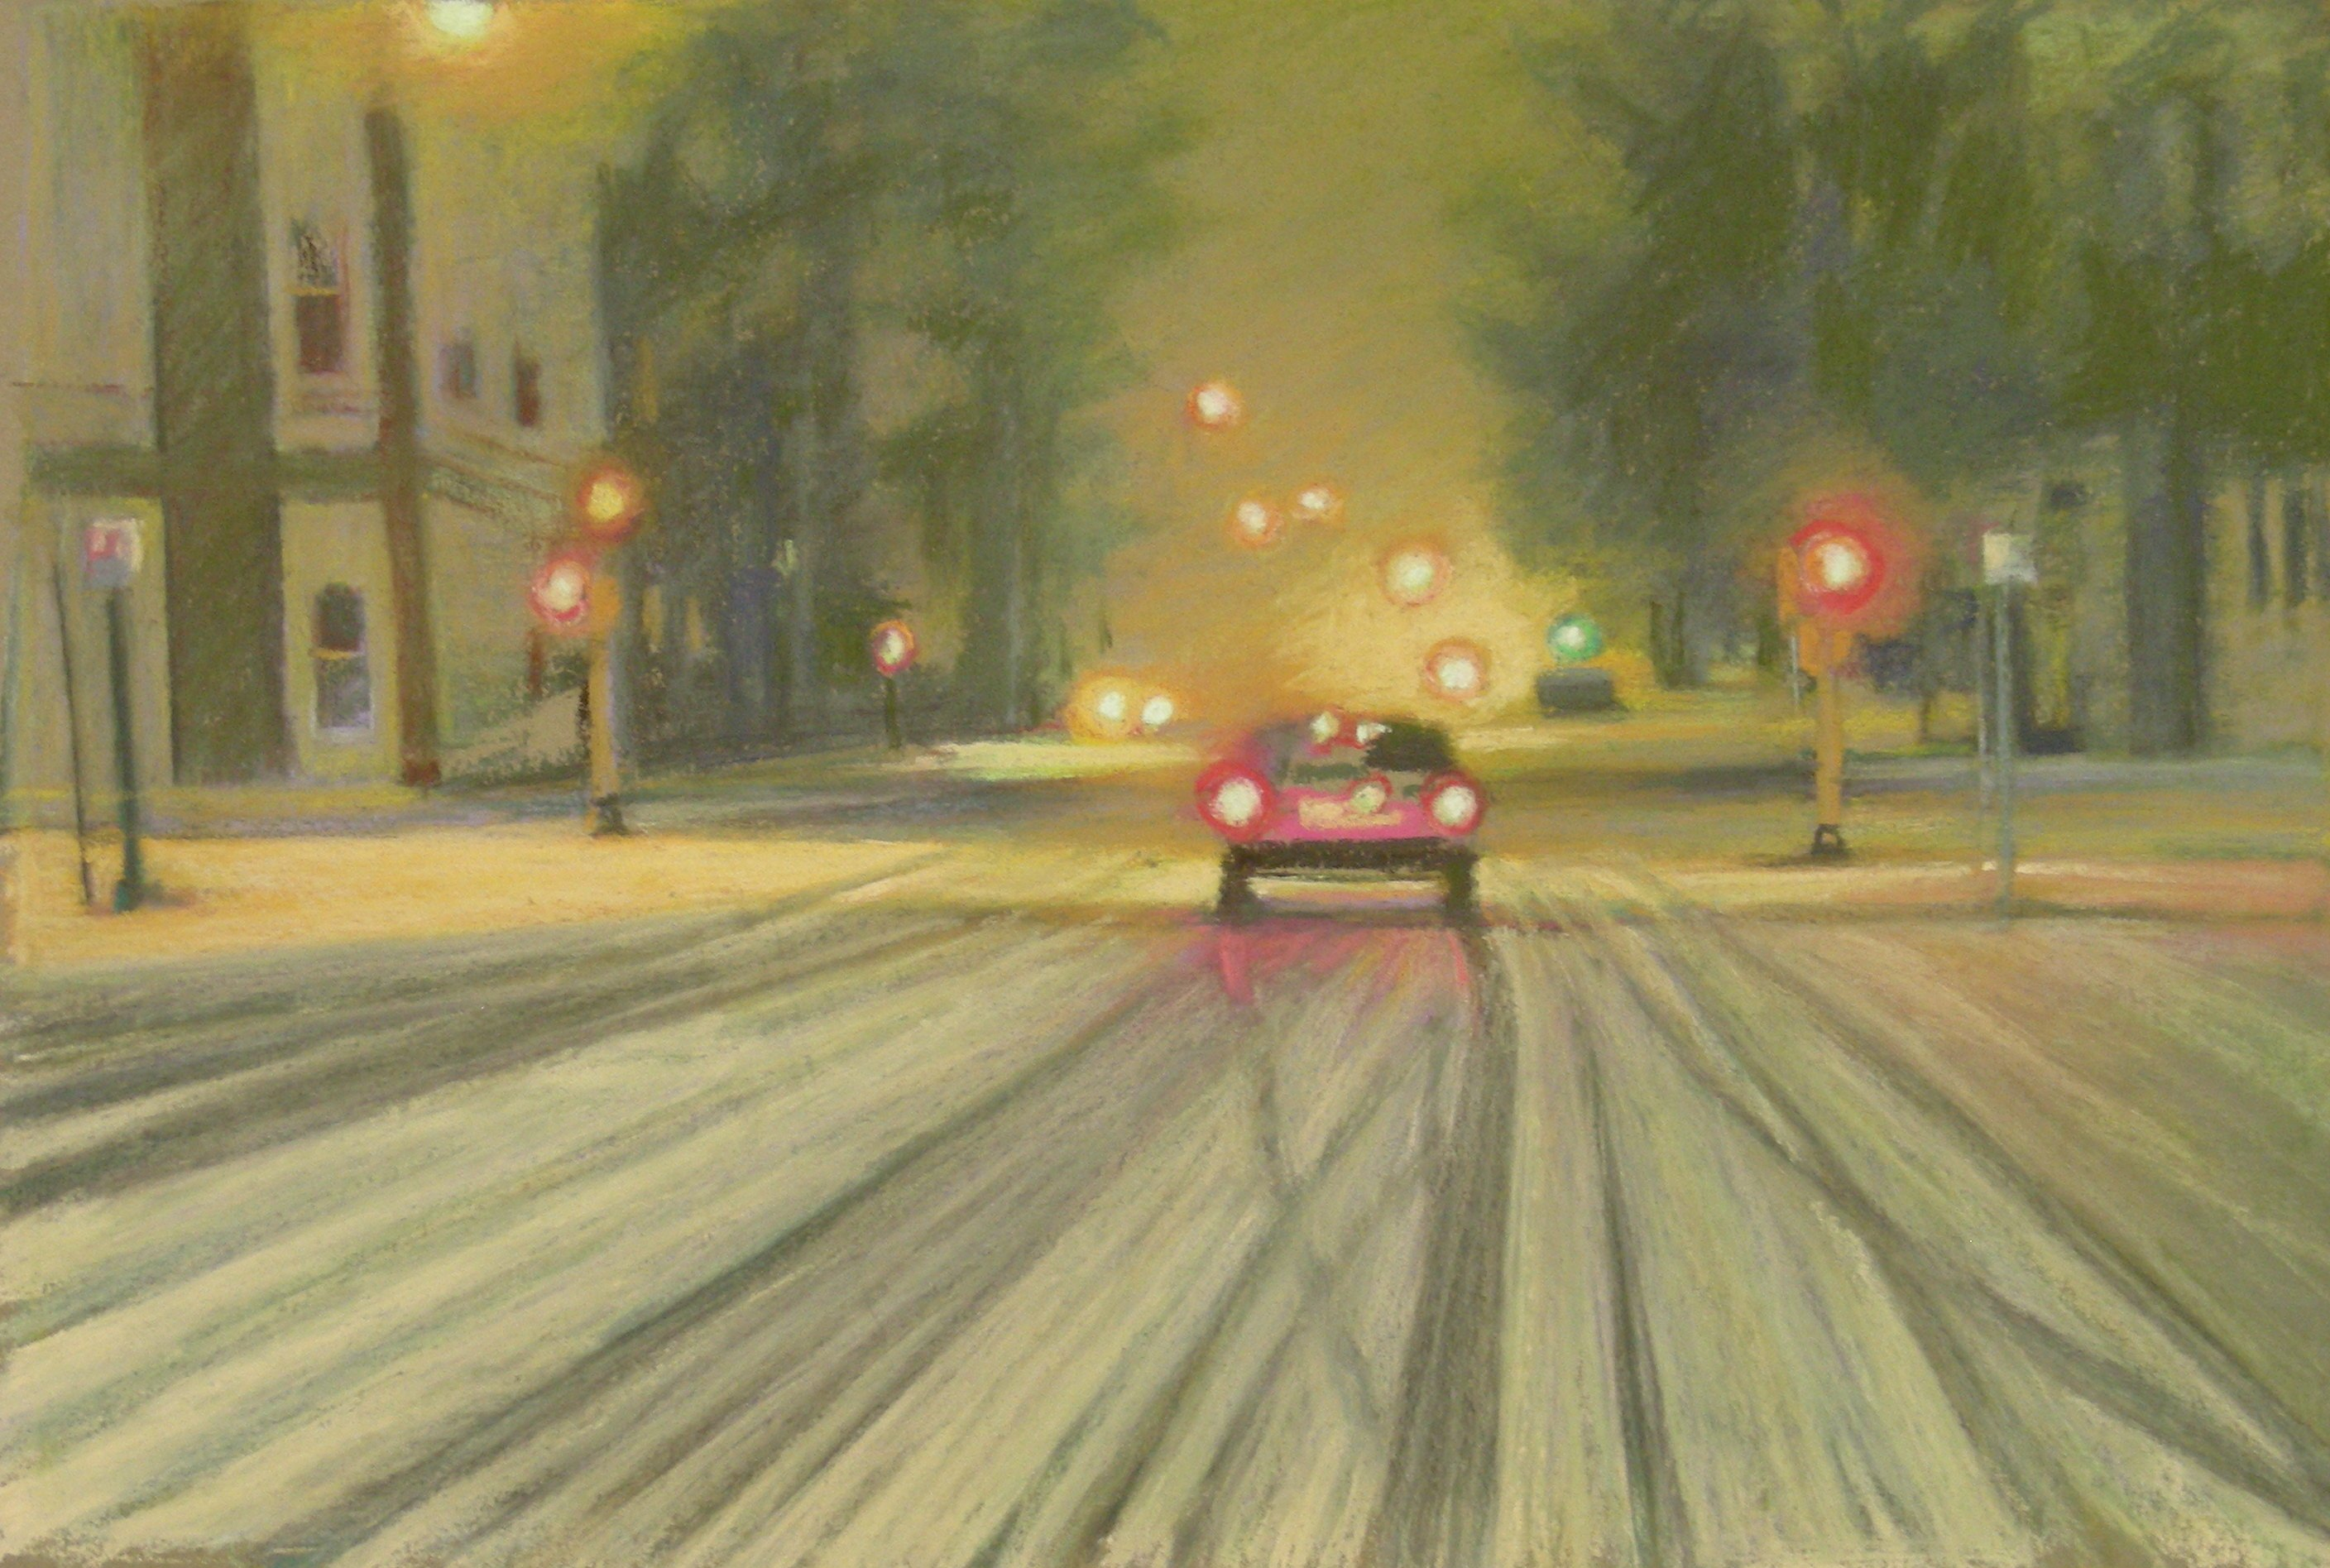 image of pastel on paper depicting city traffic in a Minnesota snowstorm at night